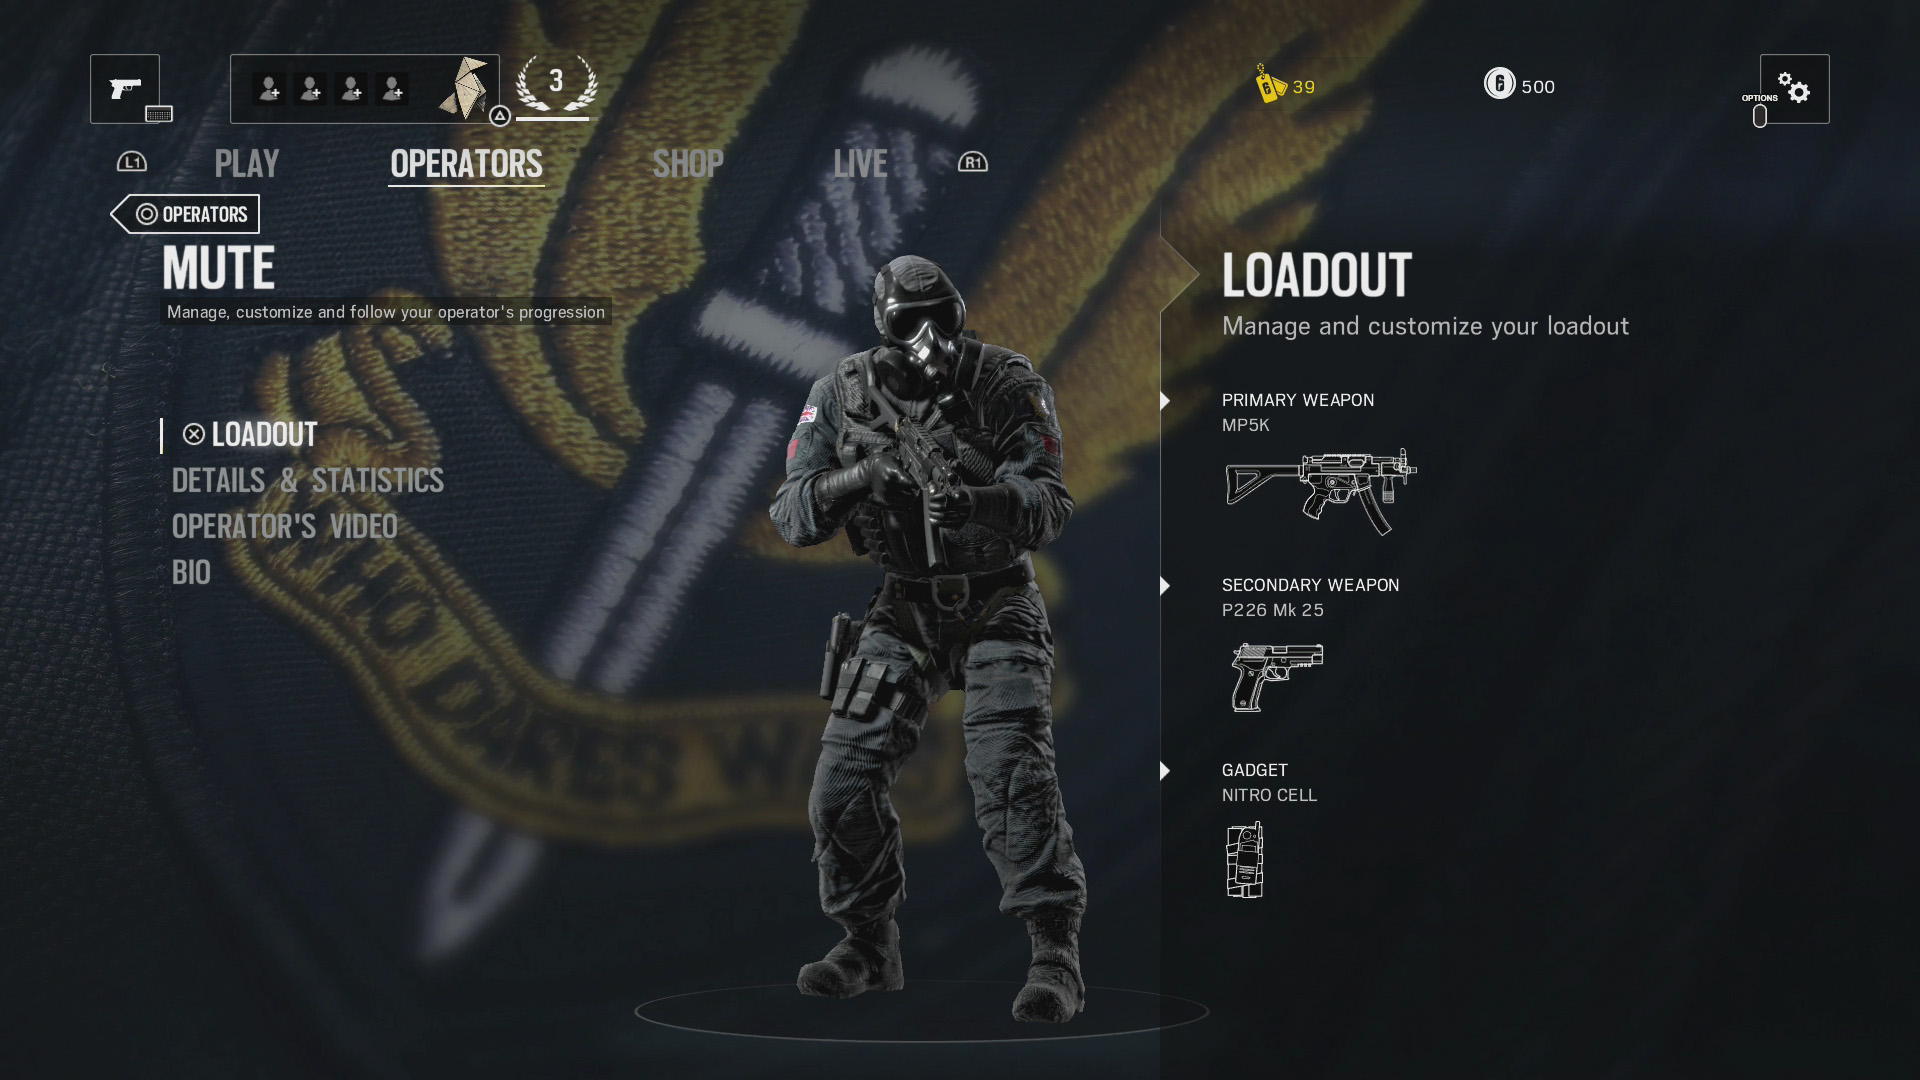 are drones good with Rainbow 6 Siege Sas Operator Guide Sledge Thatcher Smoke Mute on Airbus Swears Podcardrone Serious Idea Definitely in addition 33 Year Old Parcel Delivery Guy Is A Real Life Good Will Hunting 1662213 additionally Celebrating Palestinian Nationhood Sport Photo Essay moreover Mit Releases Scratch 2 0 To Get Kids Coding In The Cloud 1554799 further Brilliant Marketing Gimmick Amazon Drone.